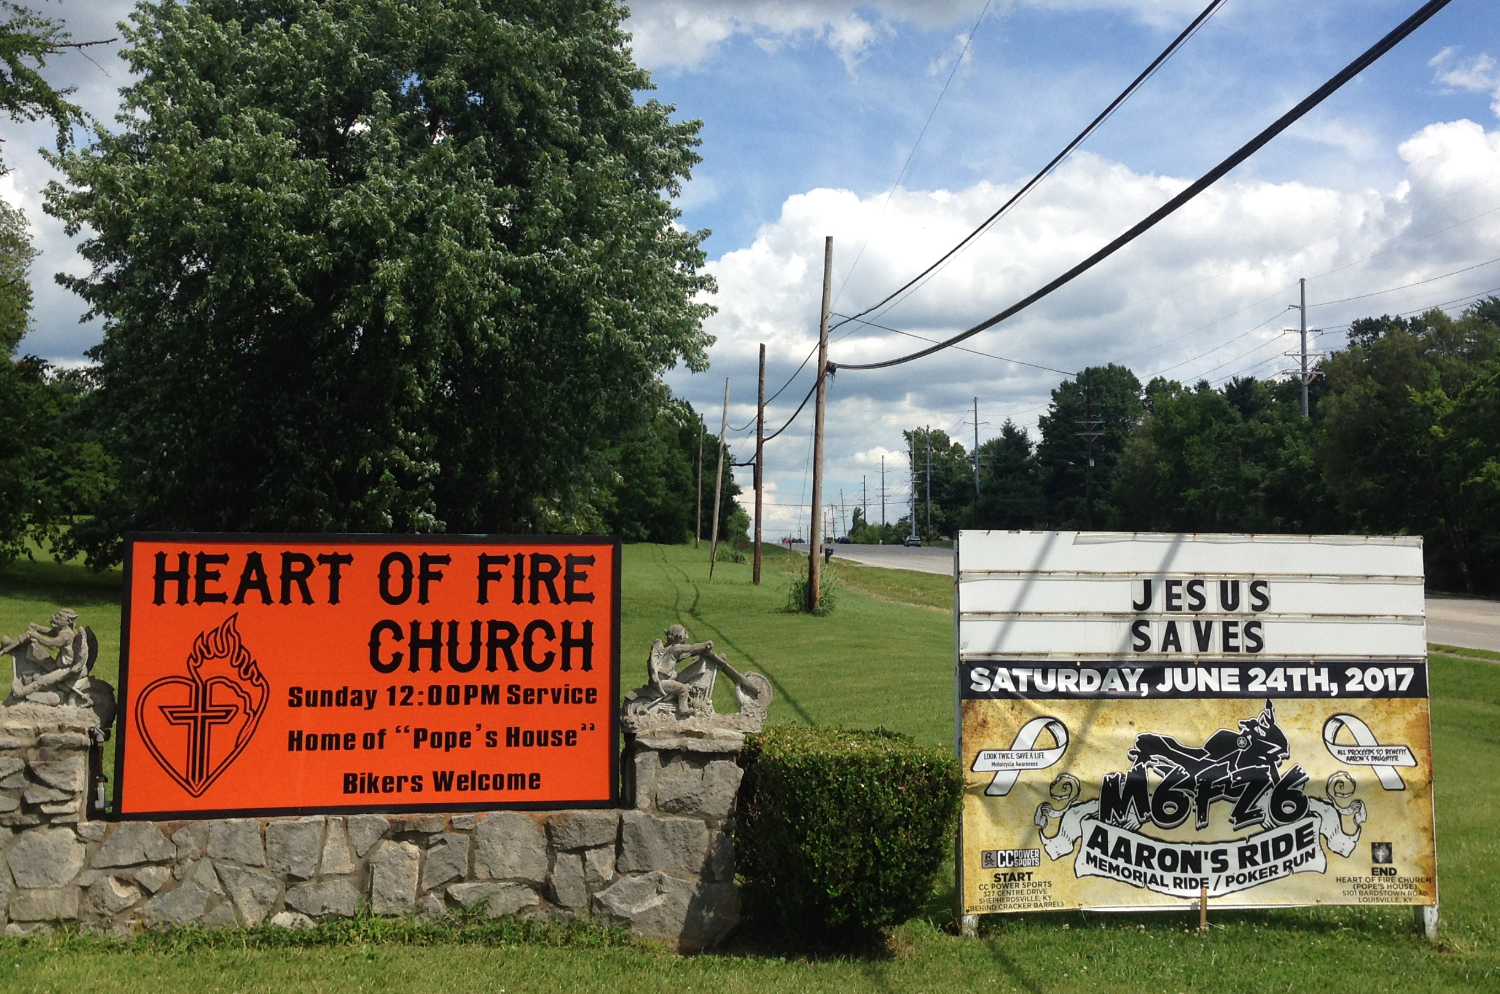 Heart of Fire Church in Fern Creek (R.G. Dunlop)